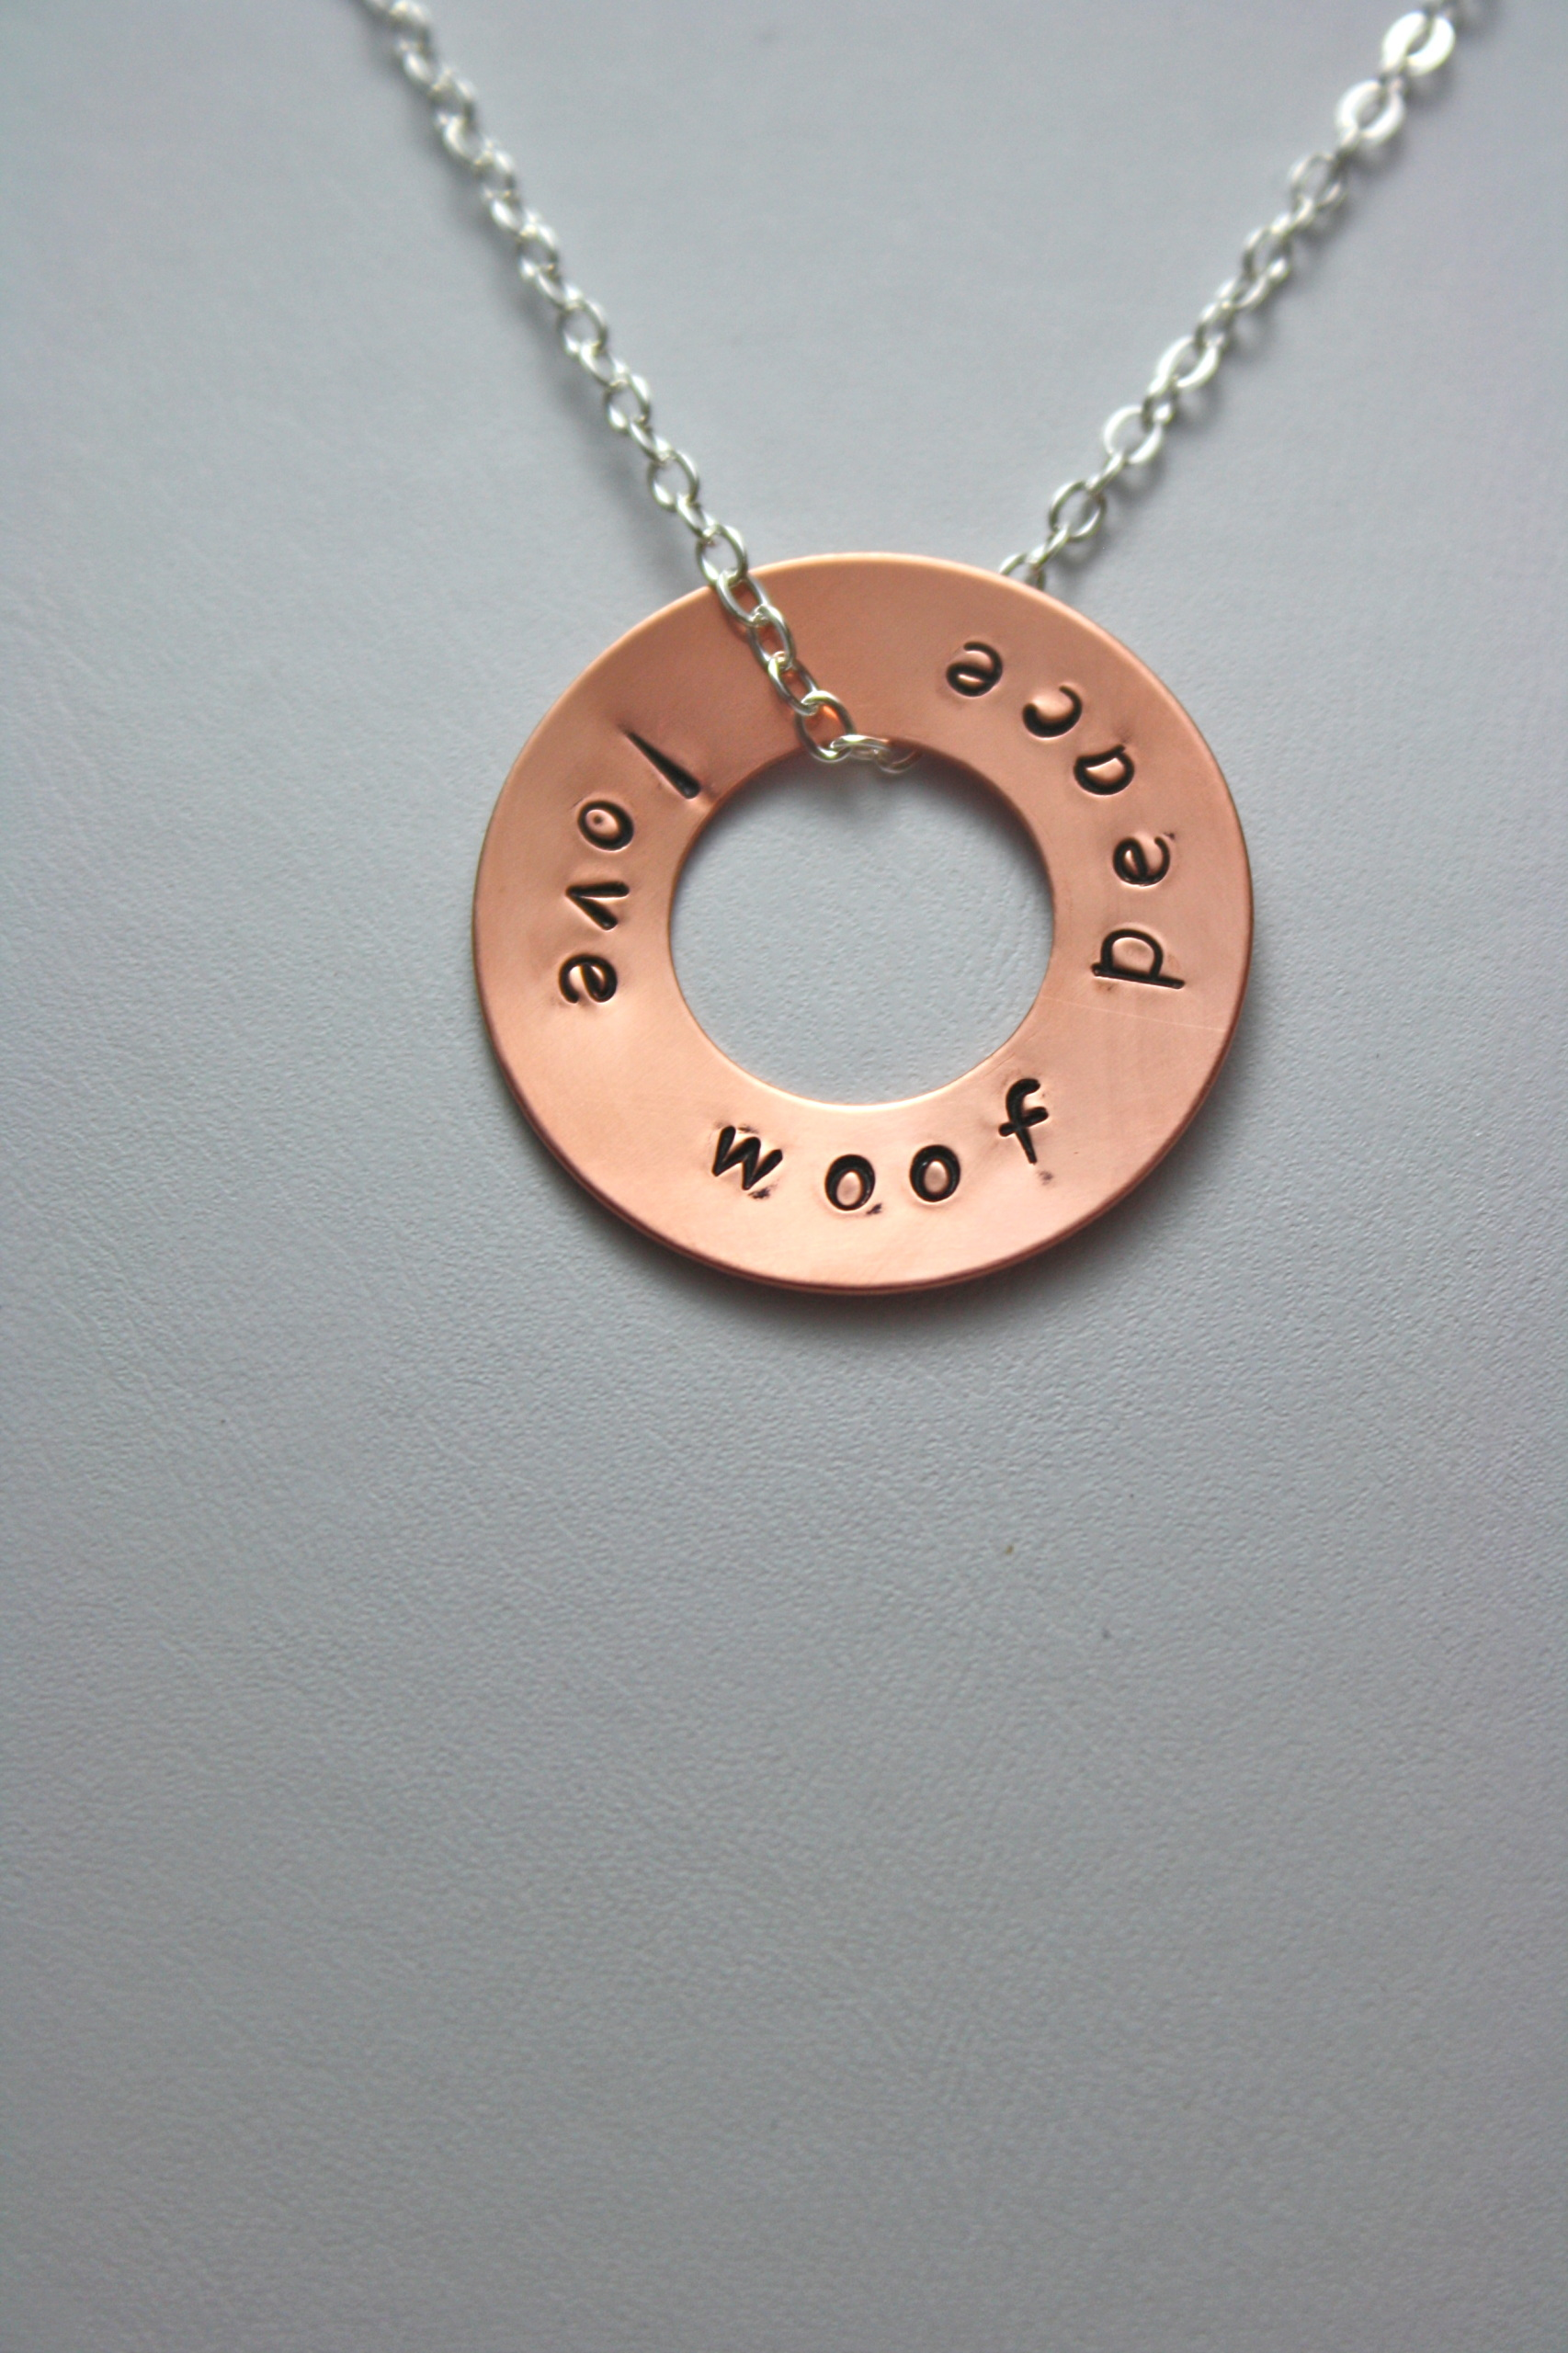 woof copper on store washer necklace sterling love chain peace dog lover